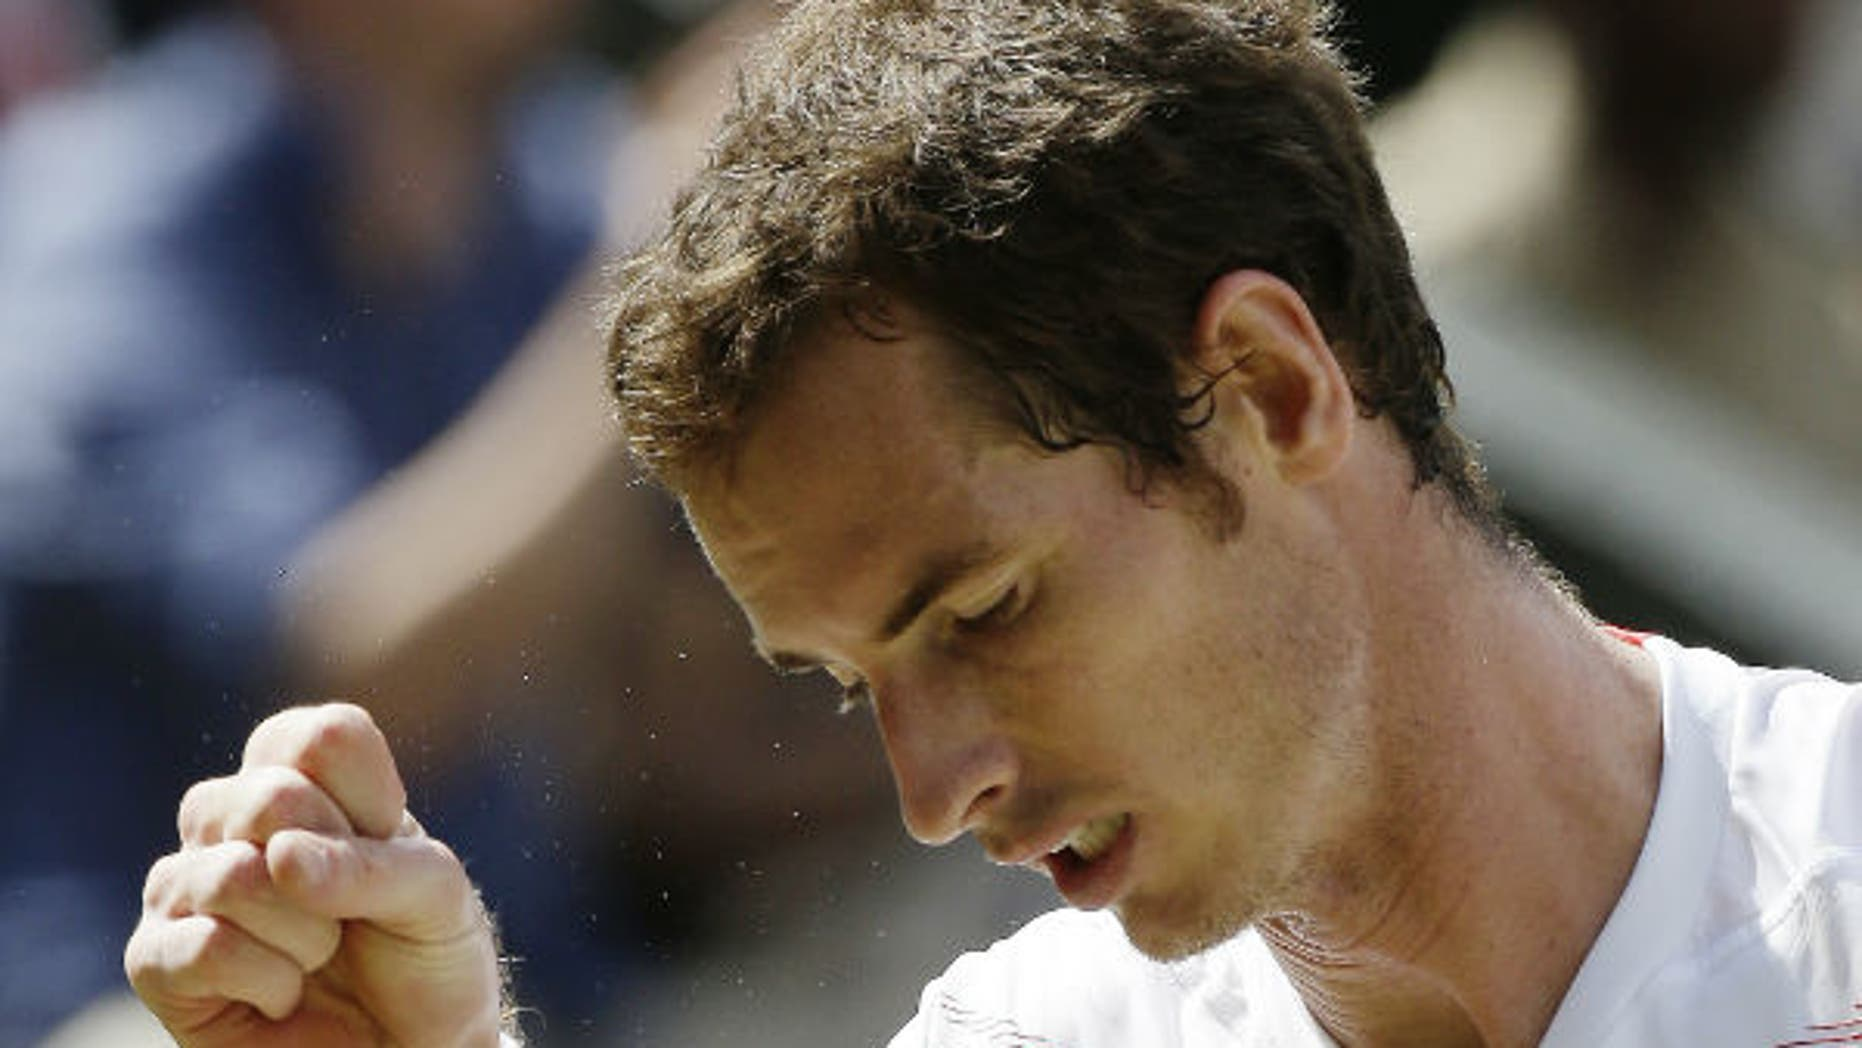 This undated photo shows Andy Murray.